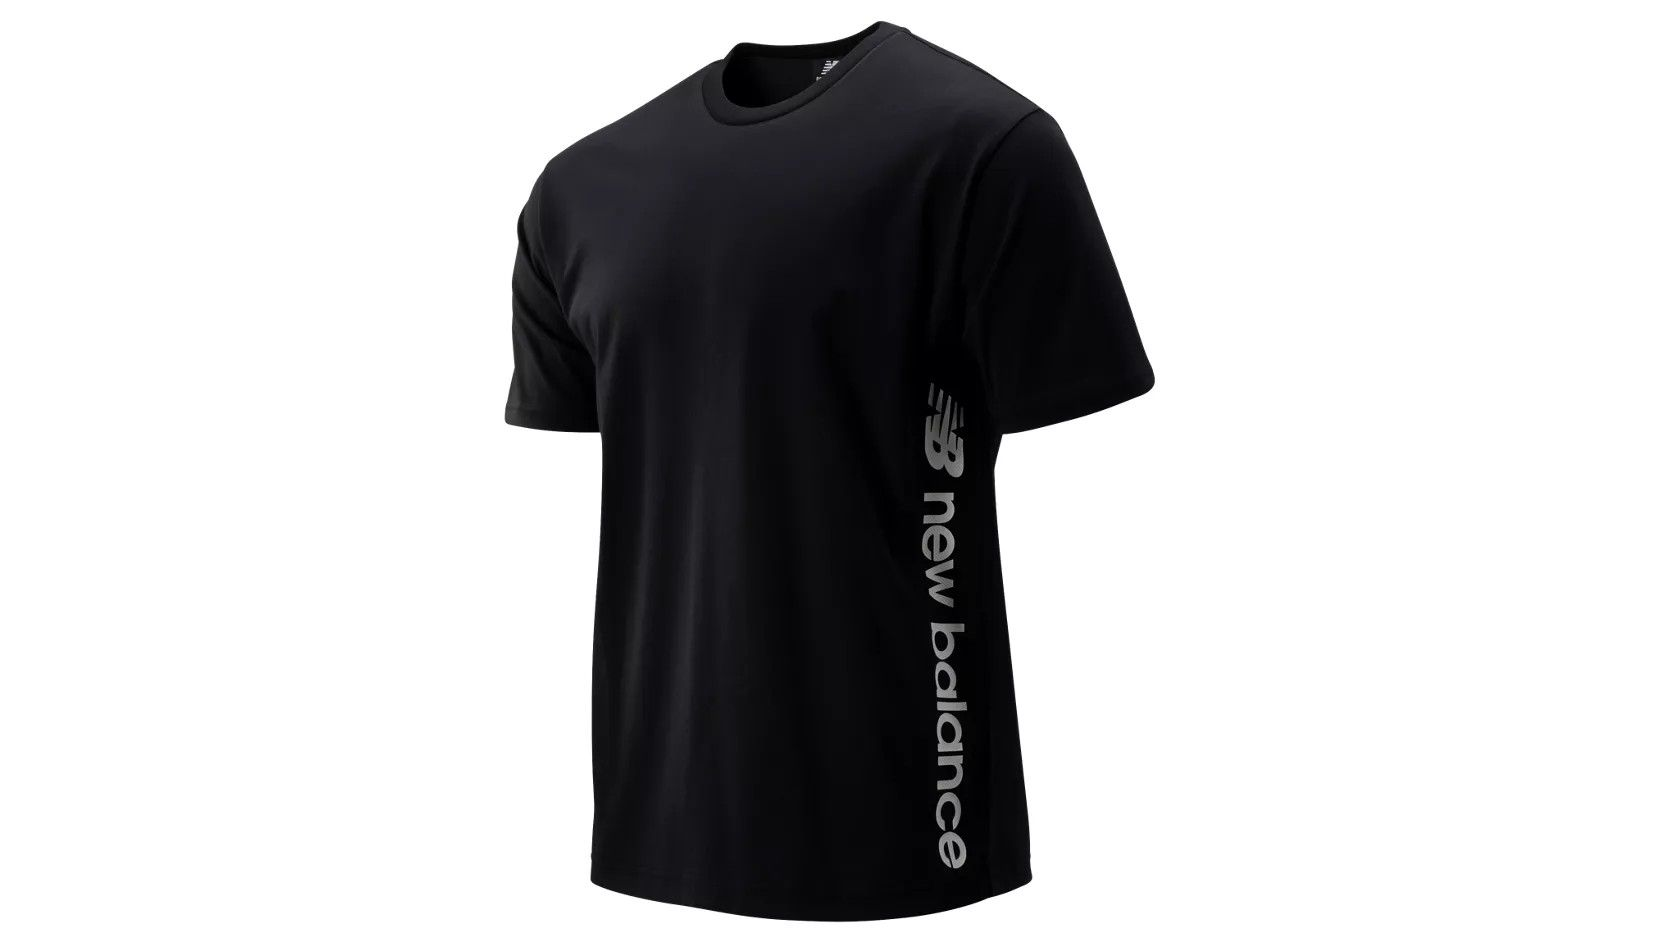 SPORT STYLE GRAPHIC T